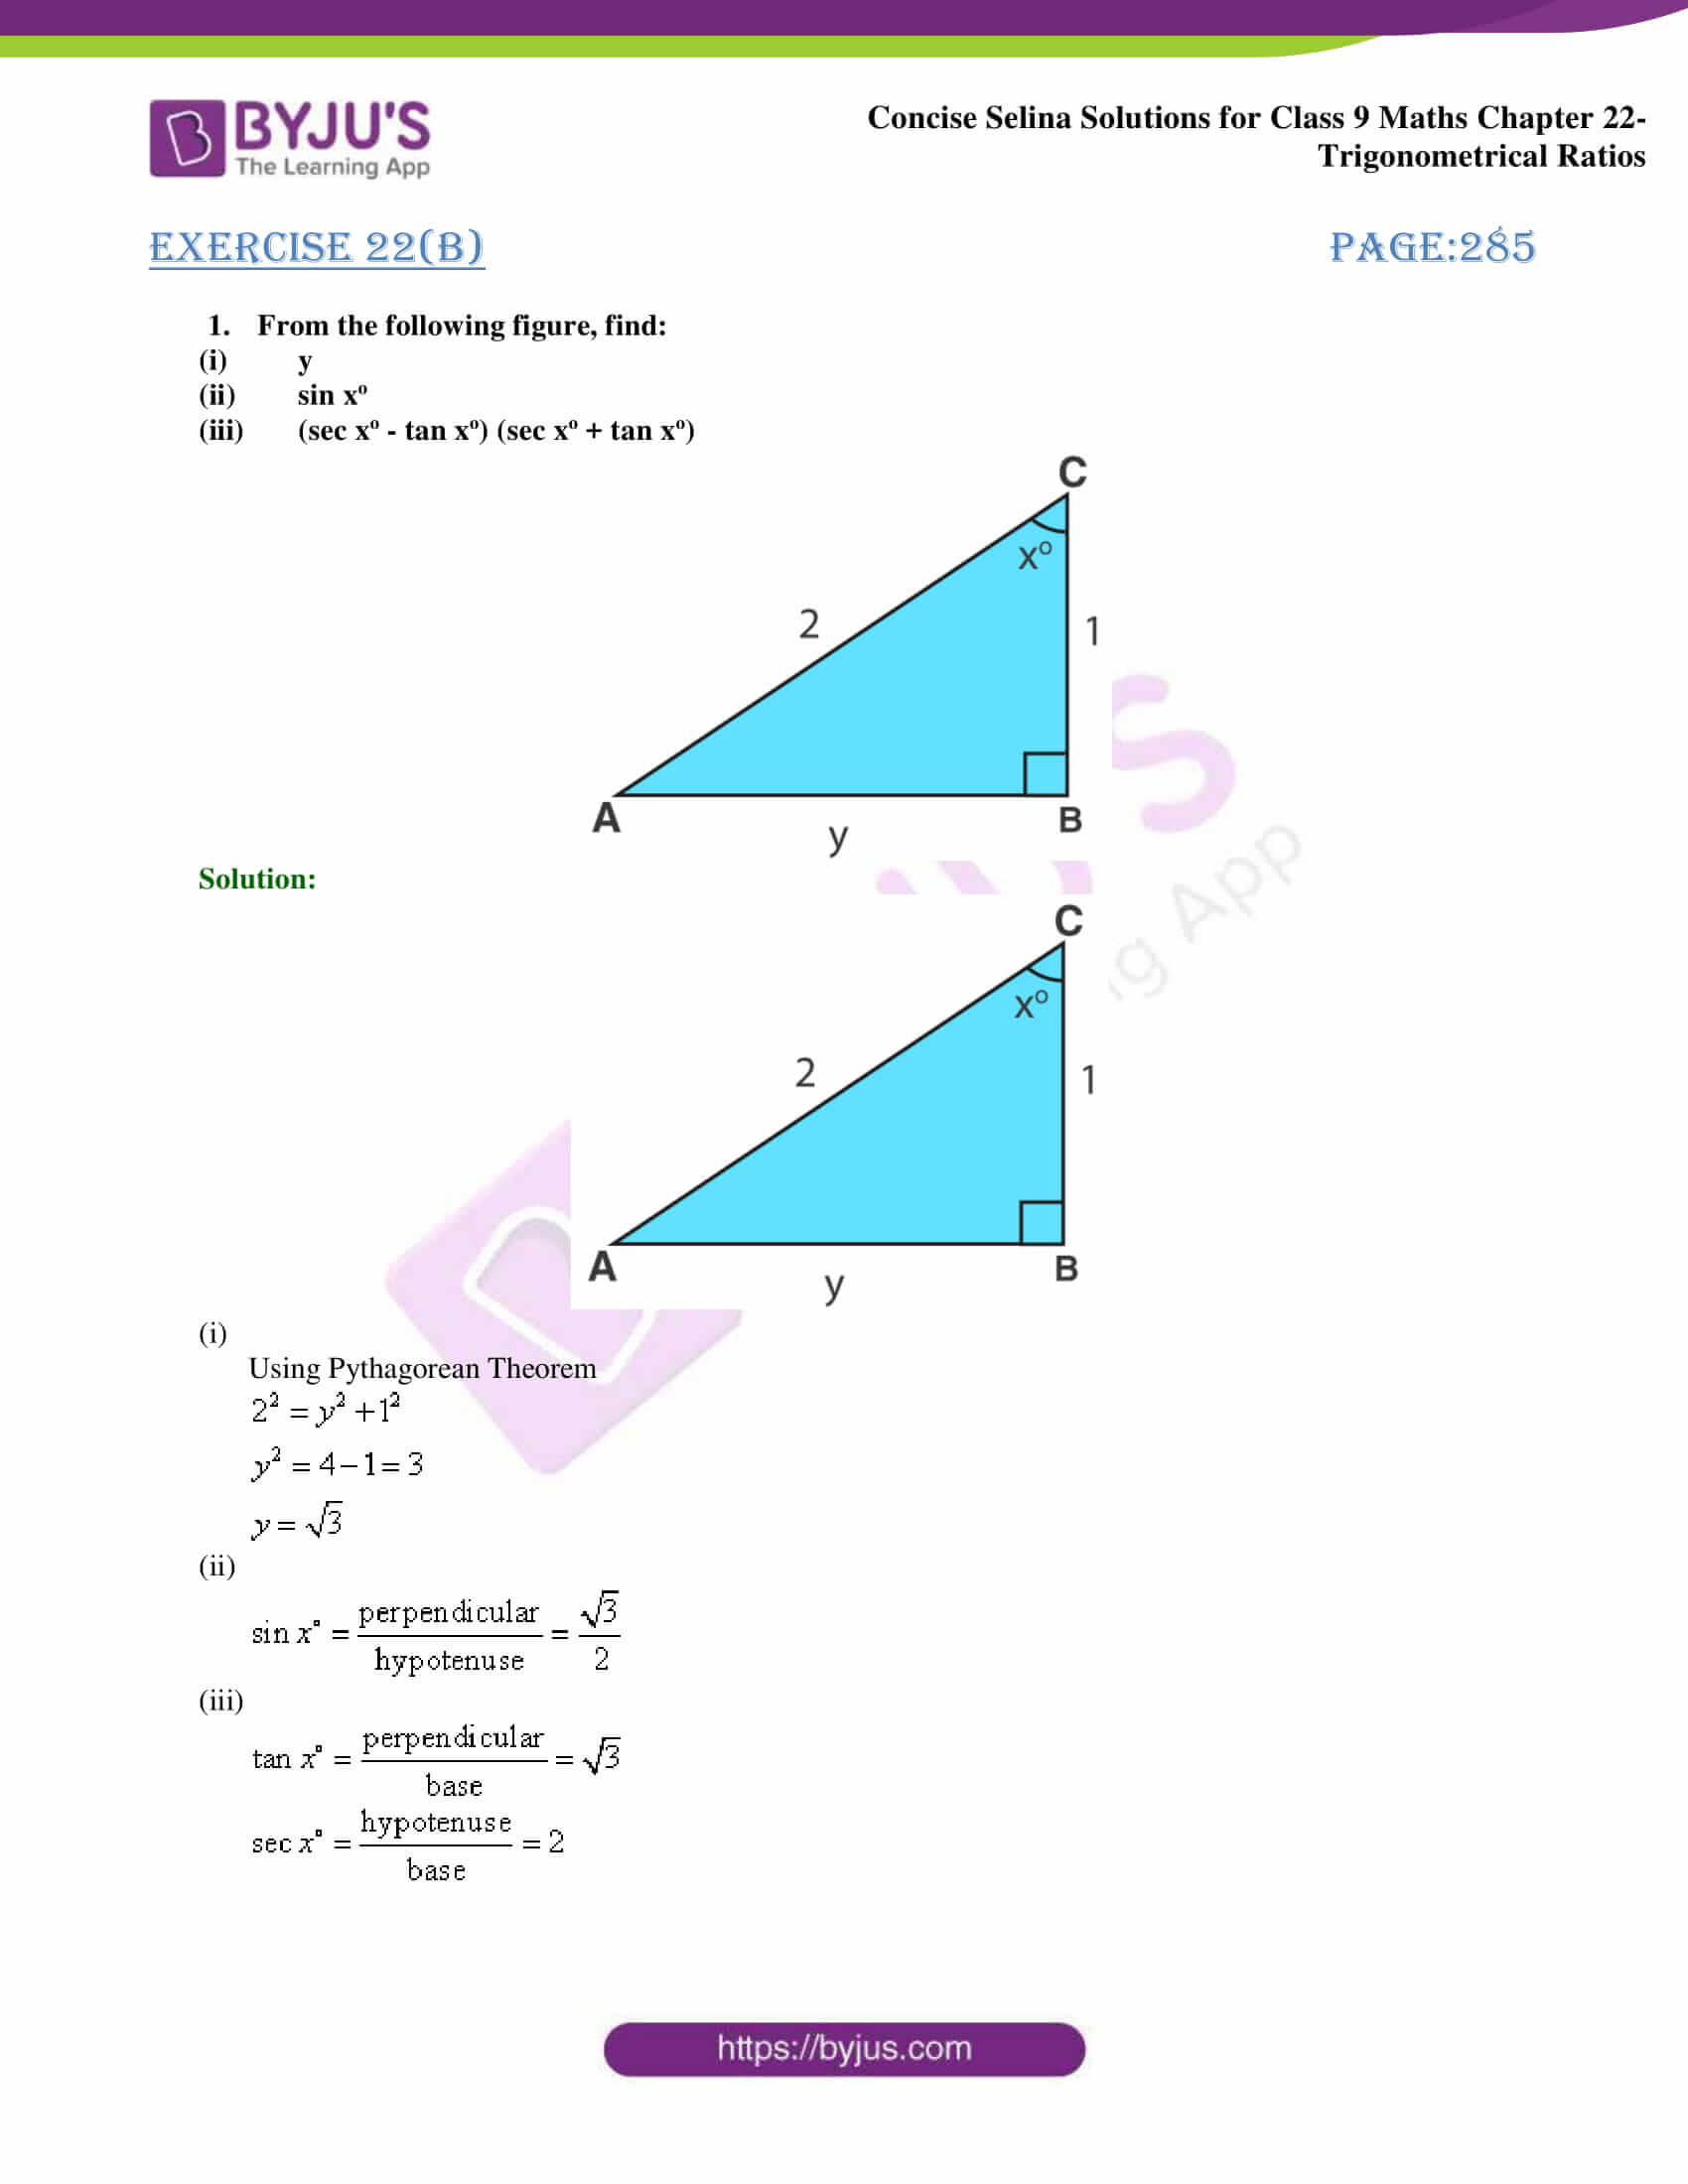 Concise Selina Solutions Class 9 Maths Chapter 22 Trigonometrical Ratios part 22